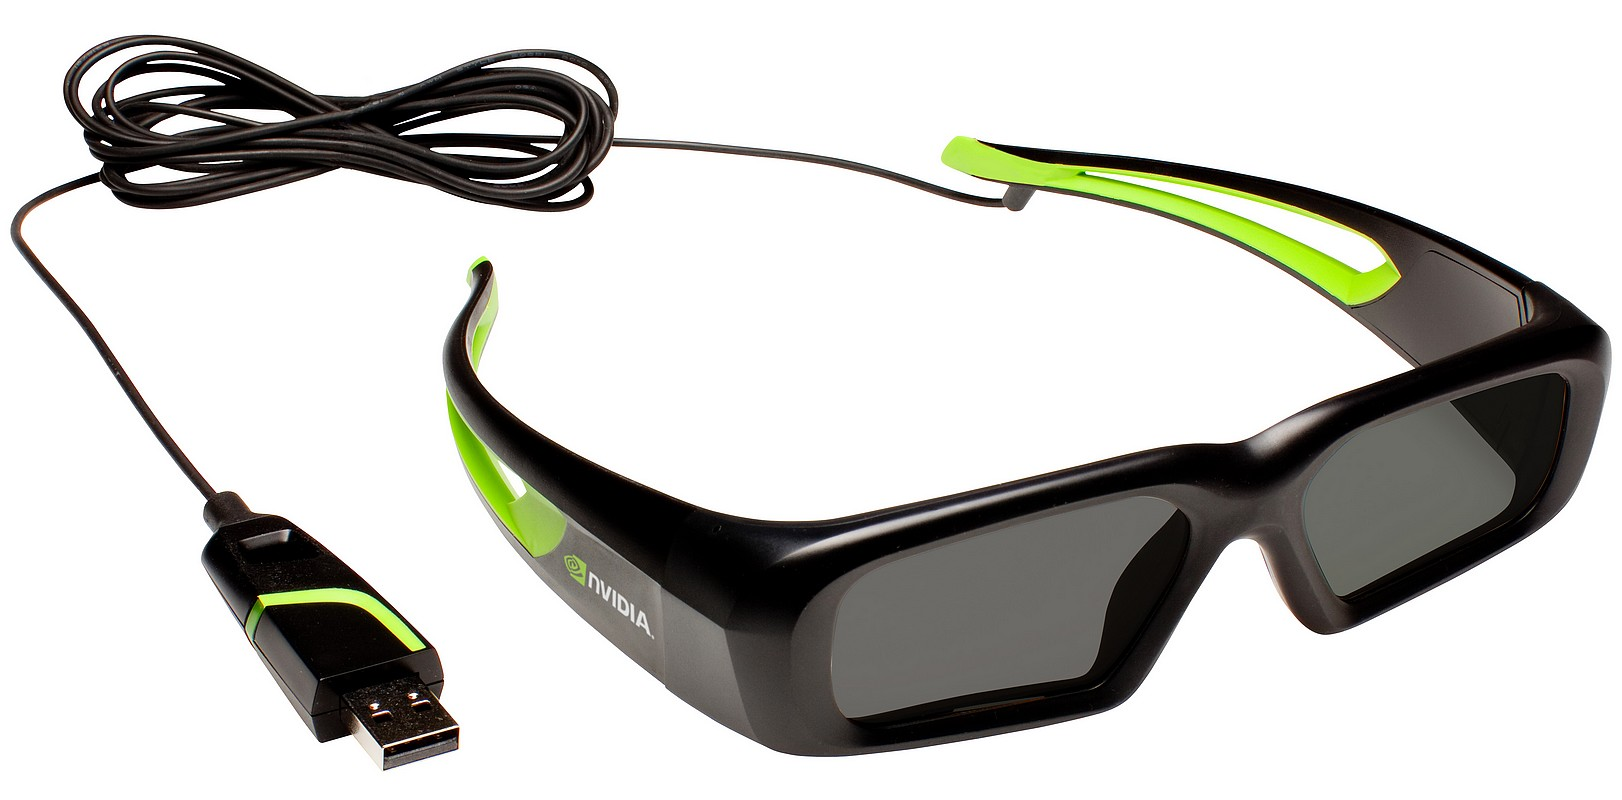 Nvidia 3D Vision Wired, Nvidia 3D Vision